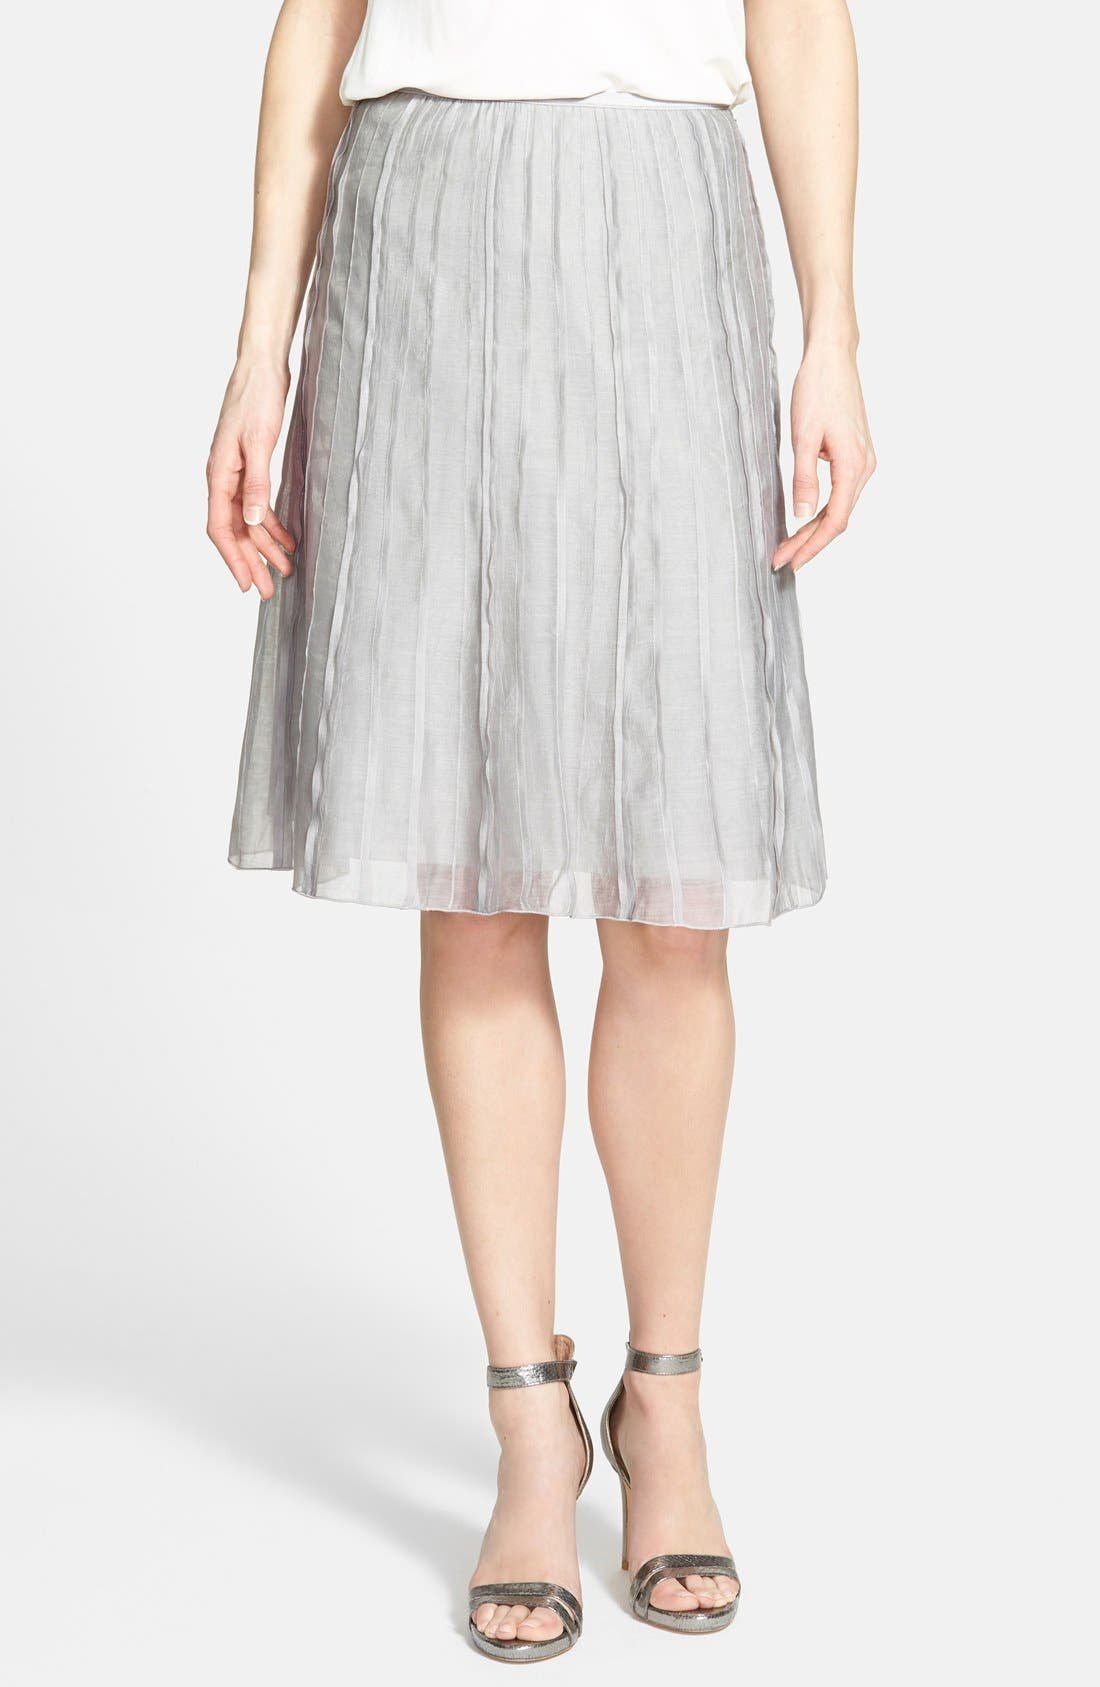 NIC+ZOE 'Batiste Flirt' Skirt, Main, color, 026